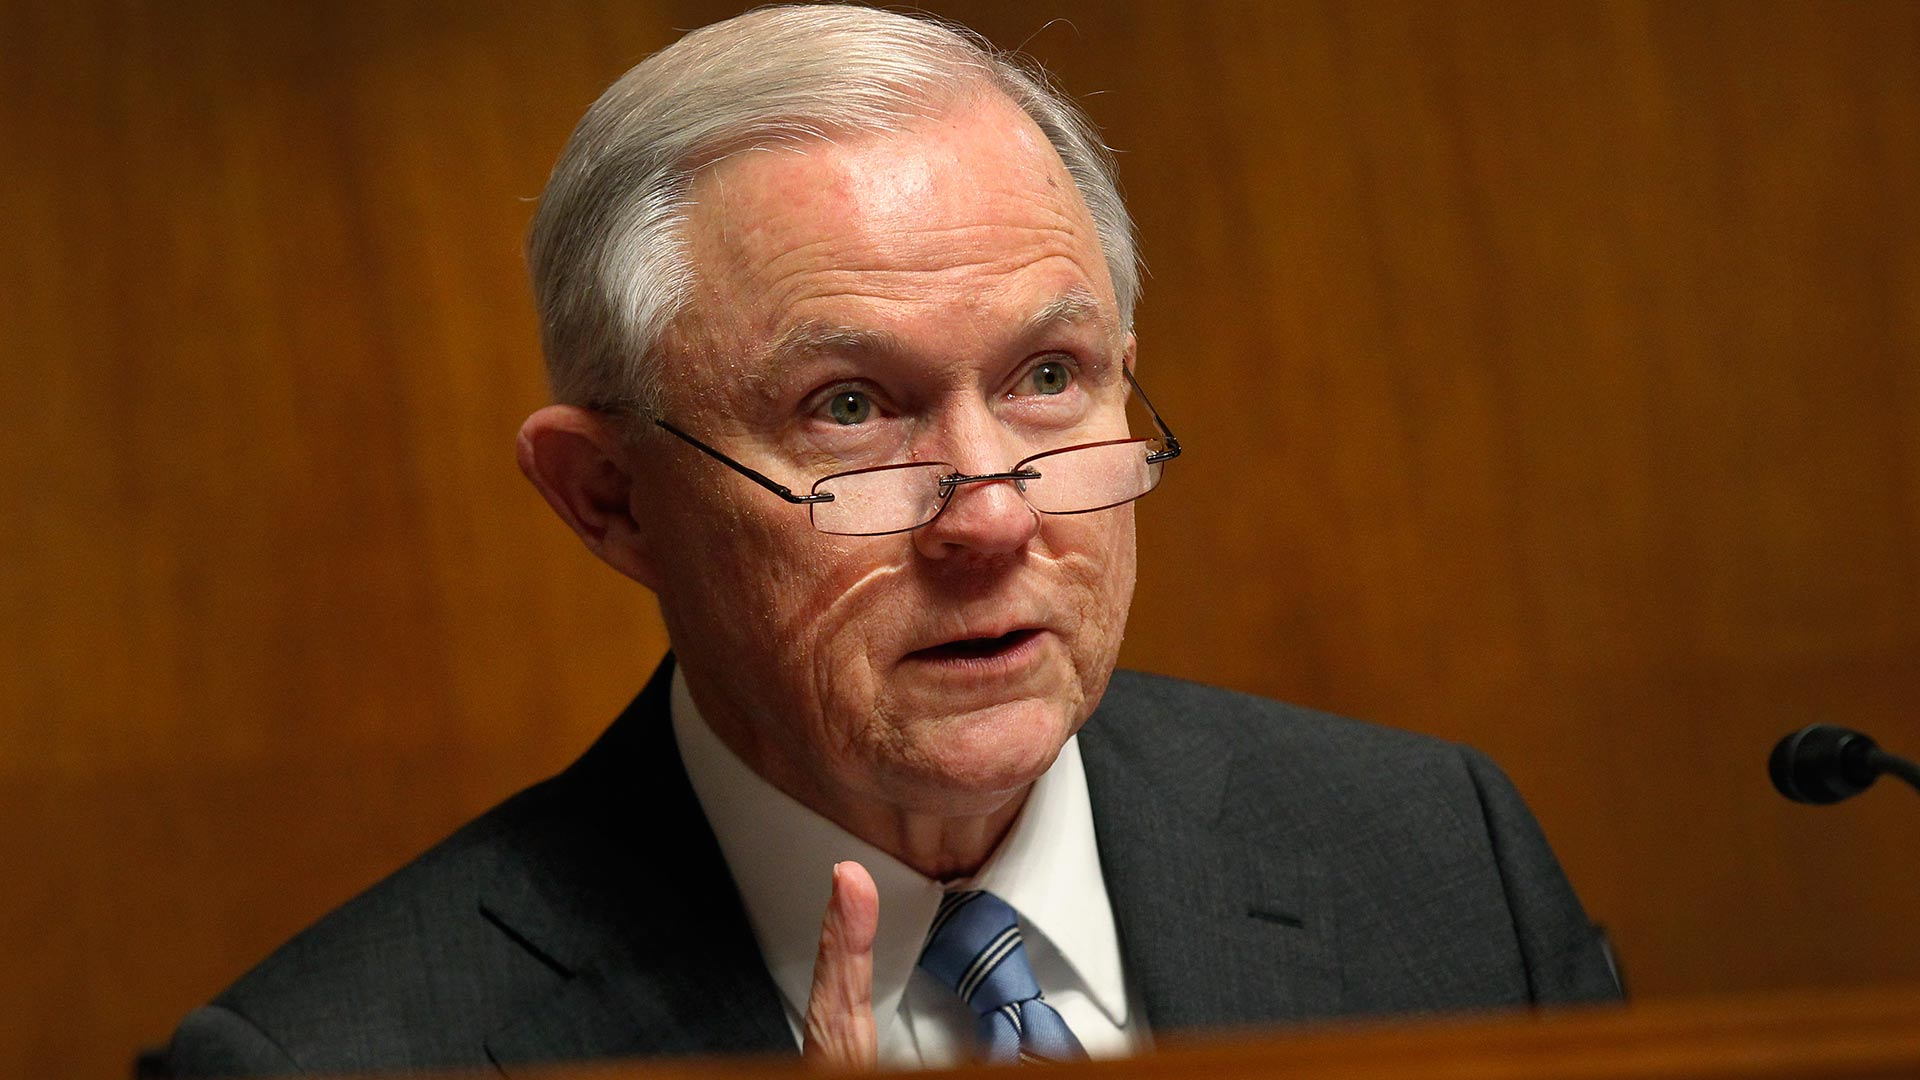 Then- Sen. Jeff Sessions (R-AL) during remarks before the Senate Subcommittee on Immigration and the National Interest, in Washington, D.C., Jan. 20, 2016.